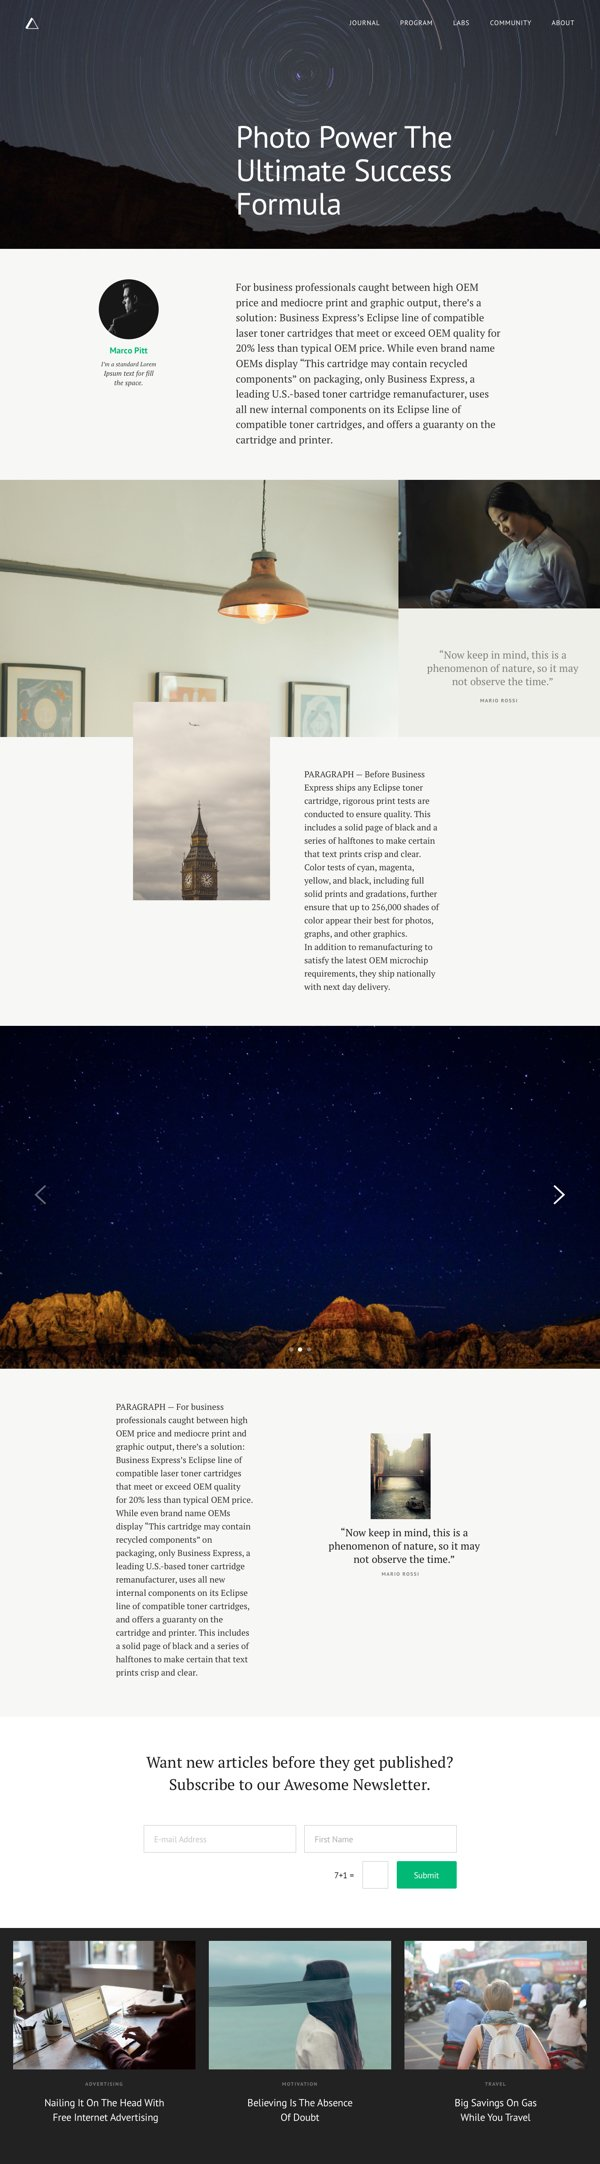 Divi-Blog-Post-Layout-03-03